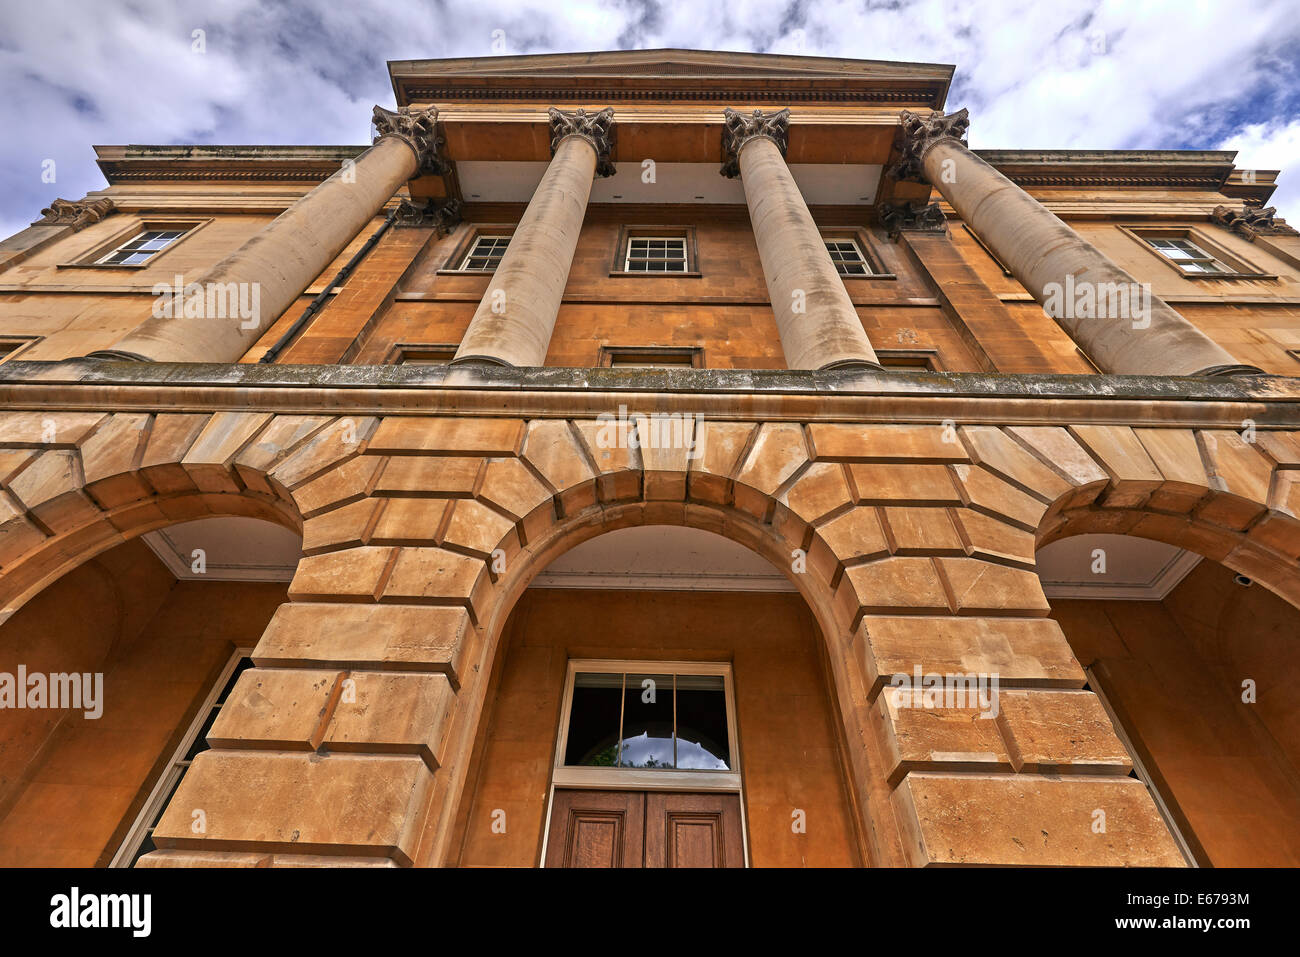 Apsley House, also known as Number One, London - Stock Image